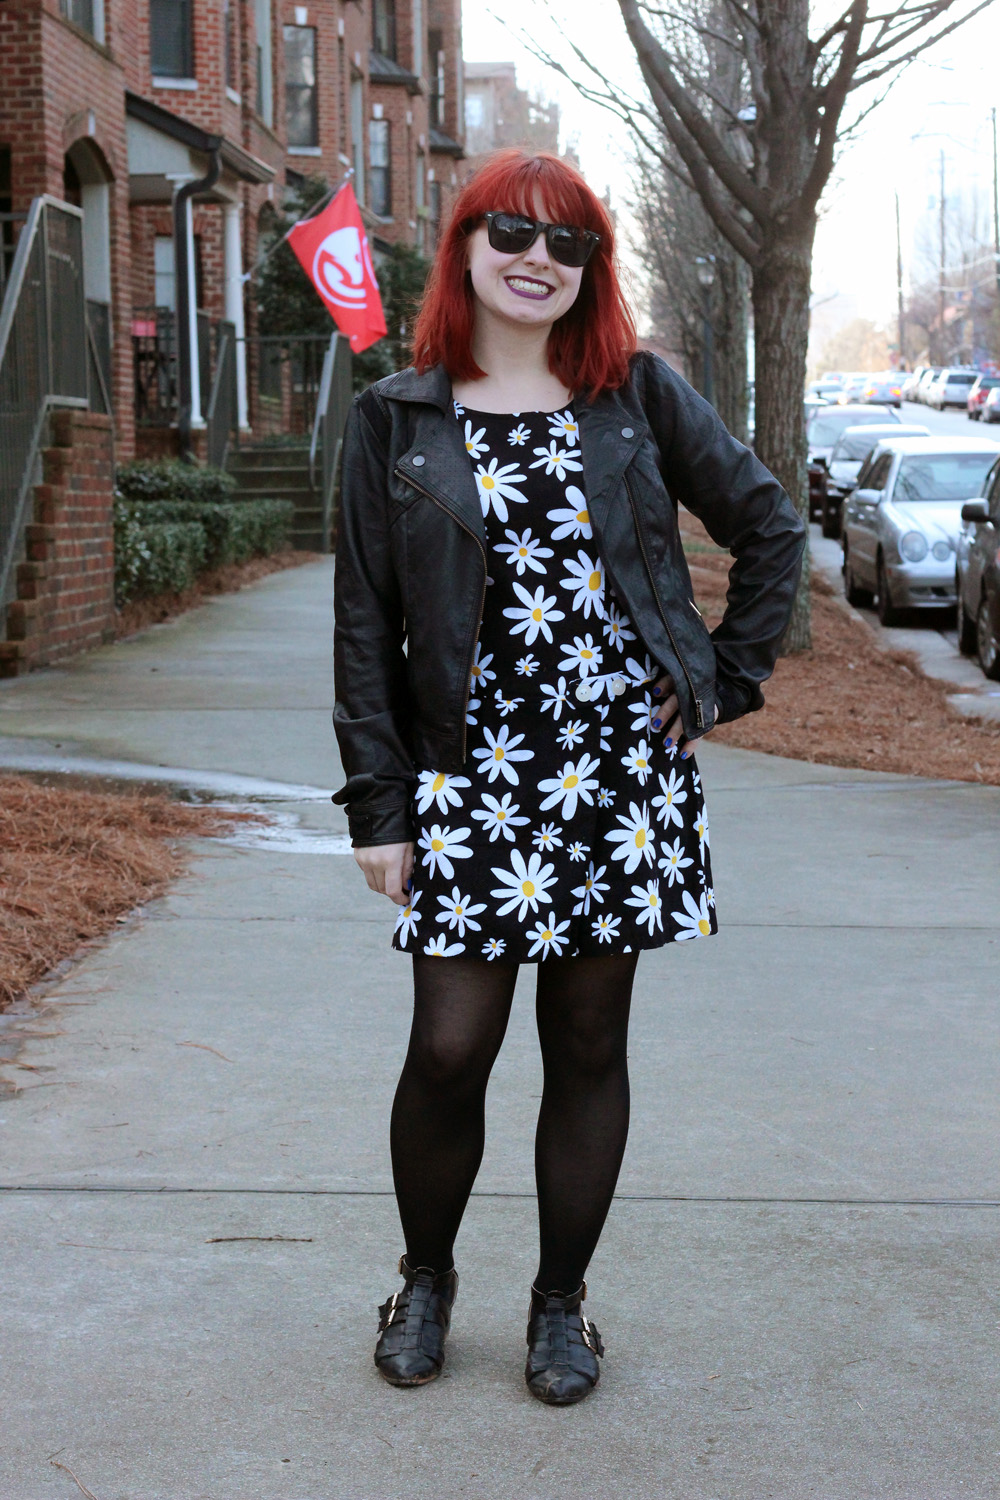 Daisy Print Skort Romper, Faux Leather Jacket, Black Tights, and Black Cutout Boot Flats